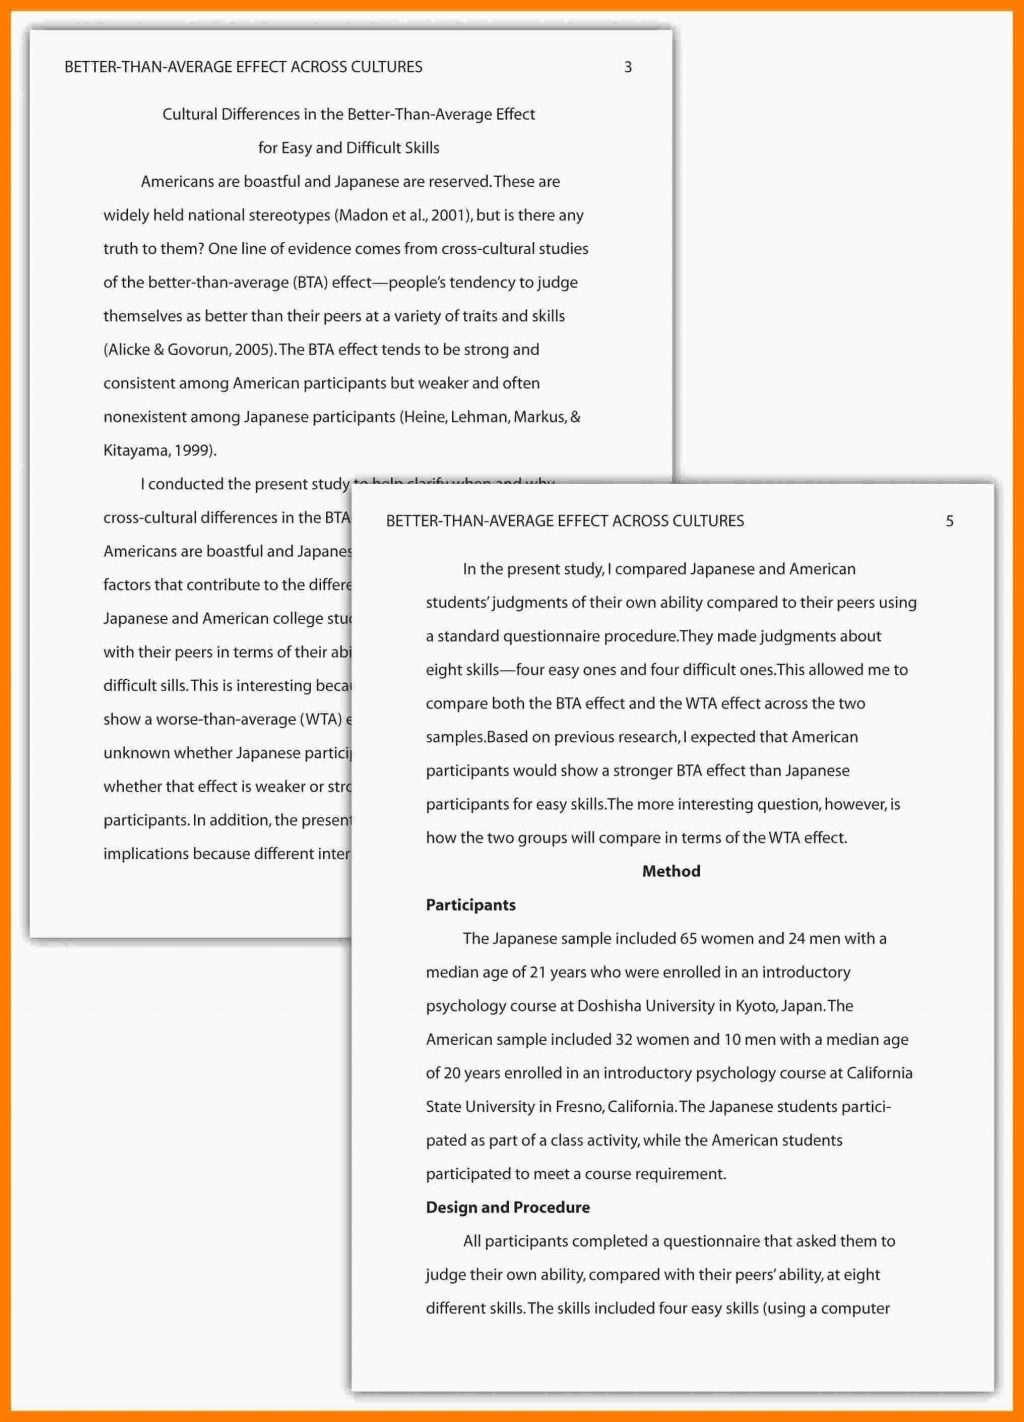 023 Apa Style Paper Example Teller Resume Formatarch Papers In Non 1024x1422 Format Research Fearsome 2018 Large